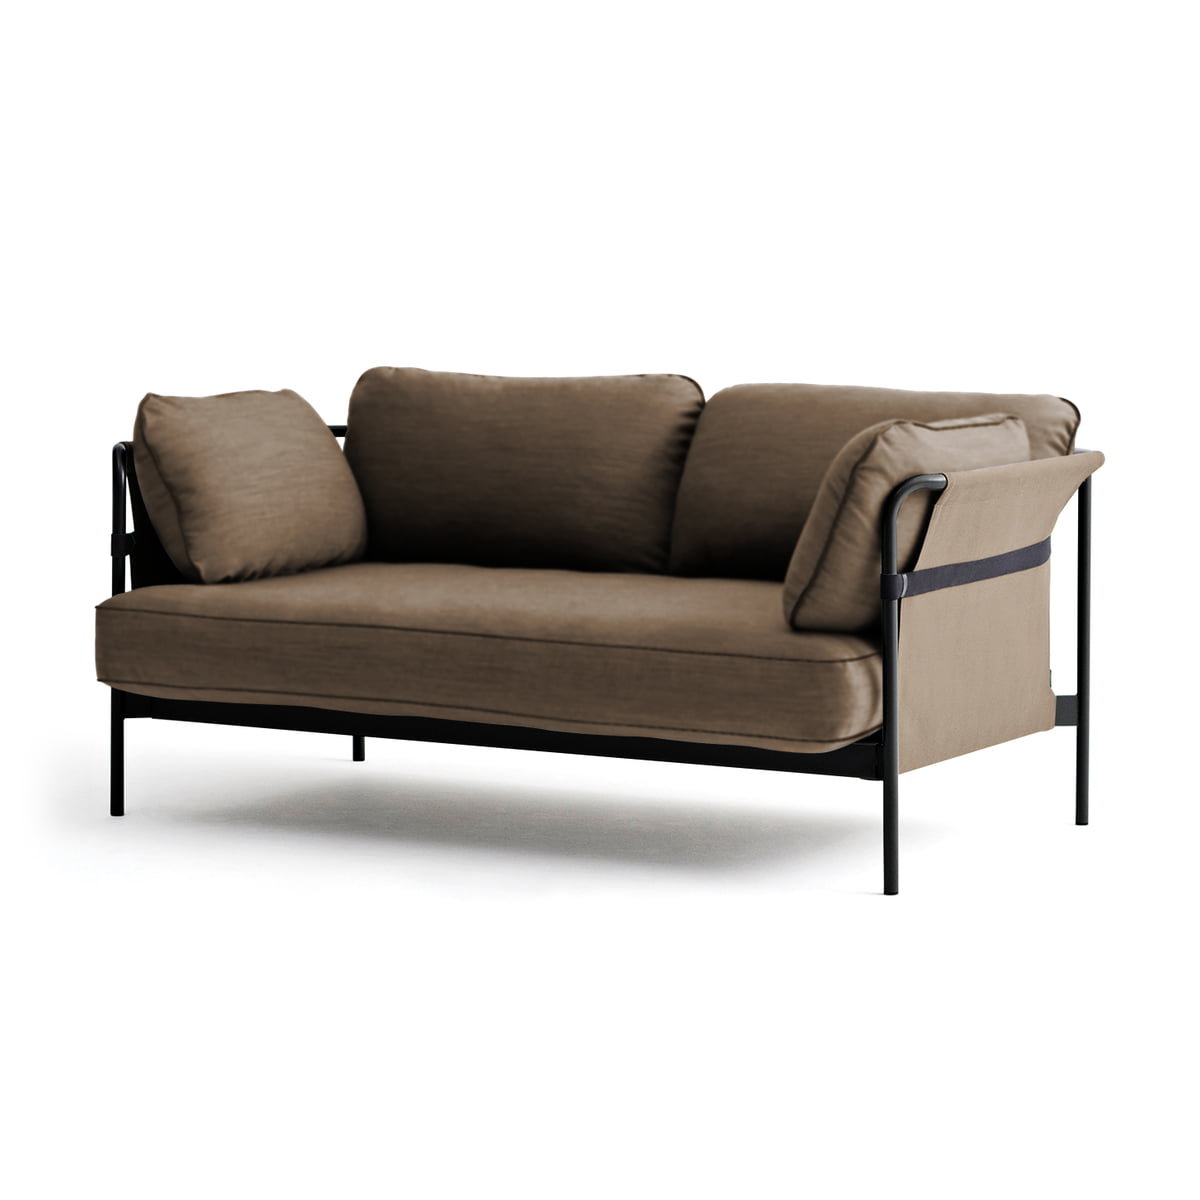 Hay 2 seater can sofa